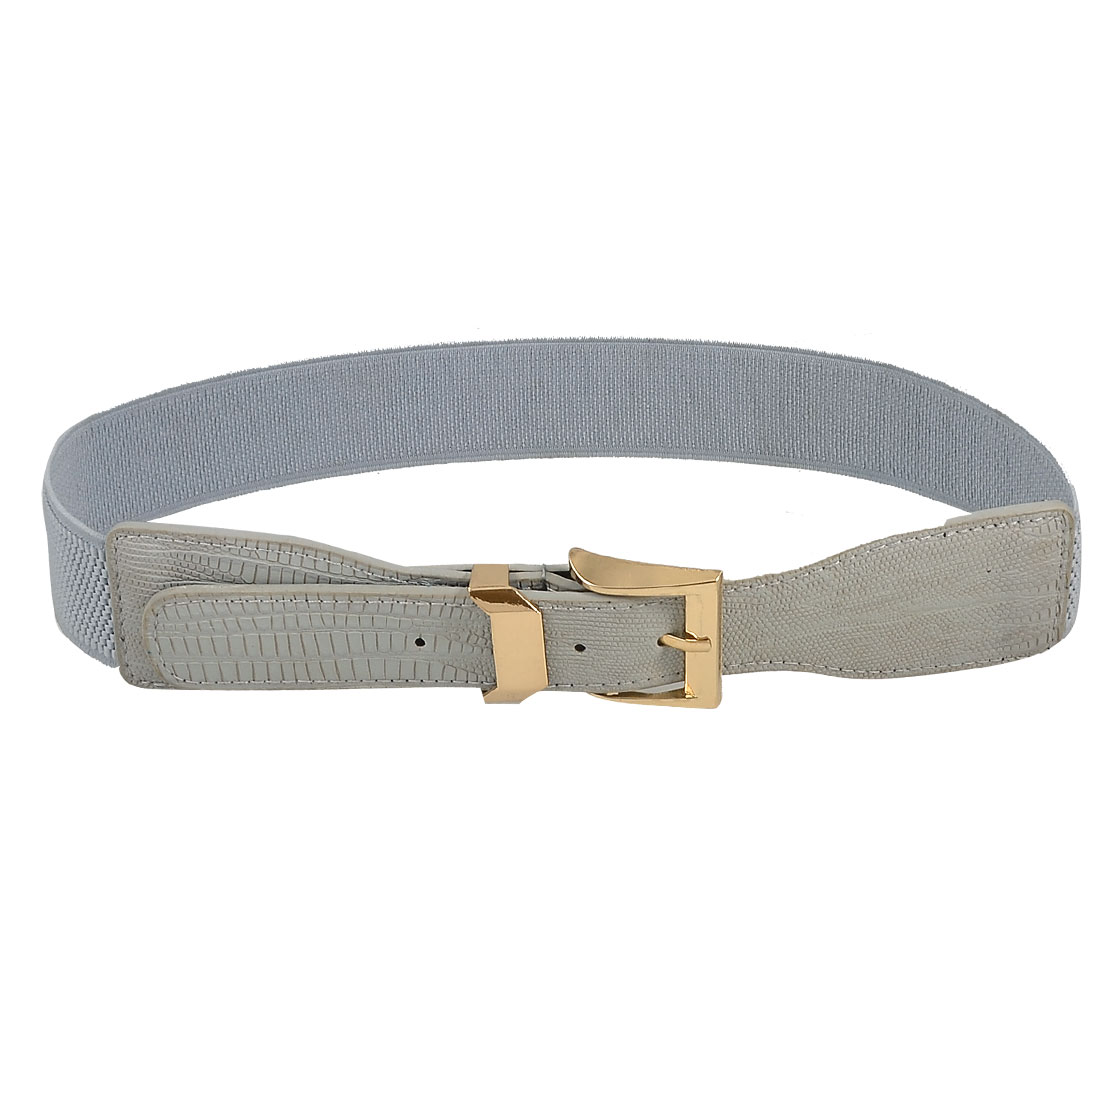 Gold Tone Buckle Crocodile Pattern Ladies Gray Stretchy Waist Belt Waistband